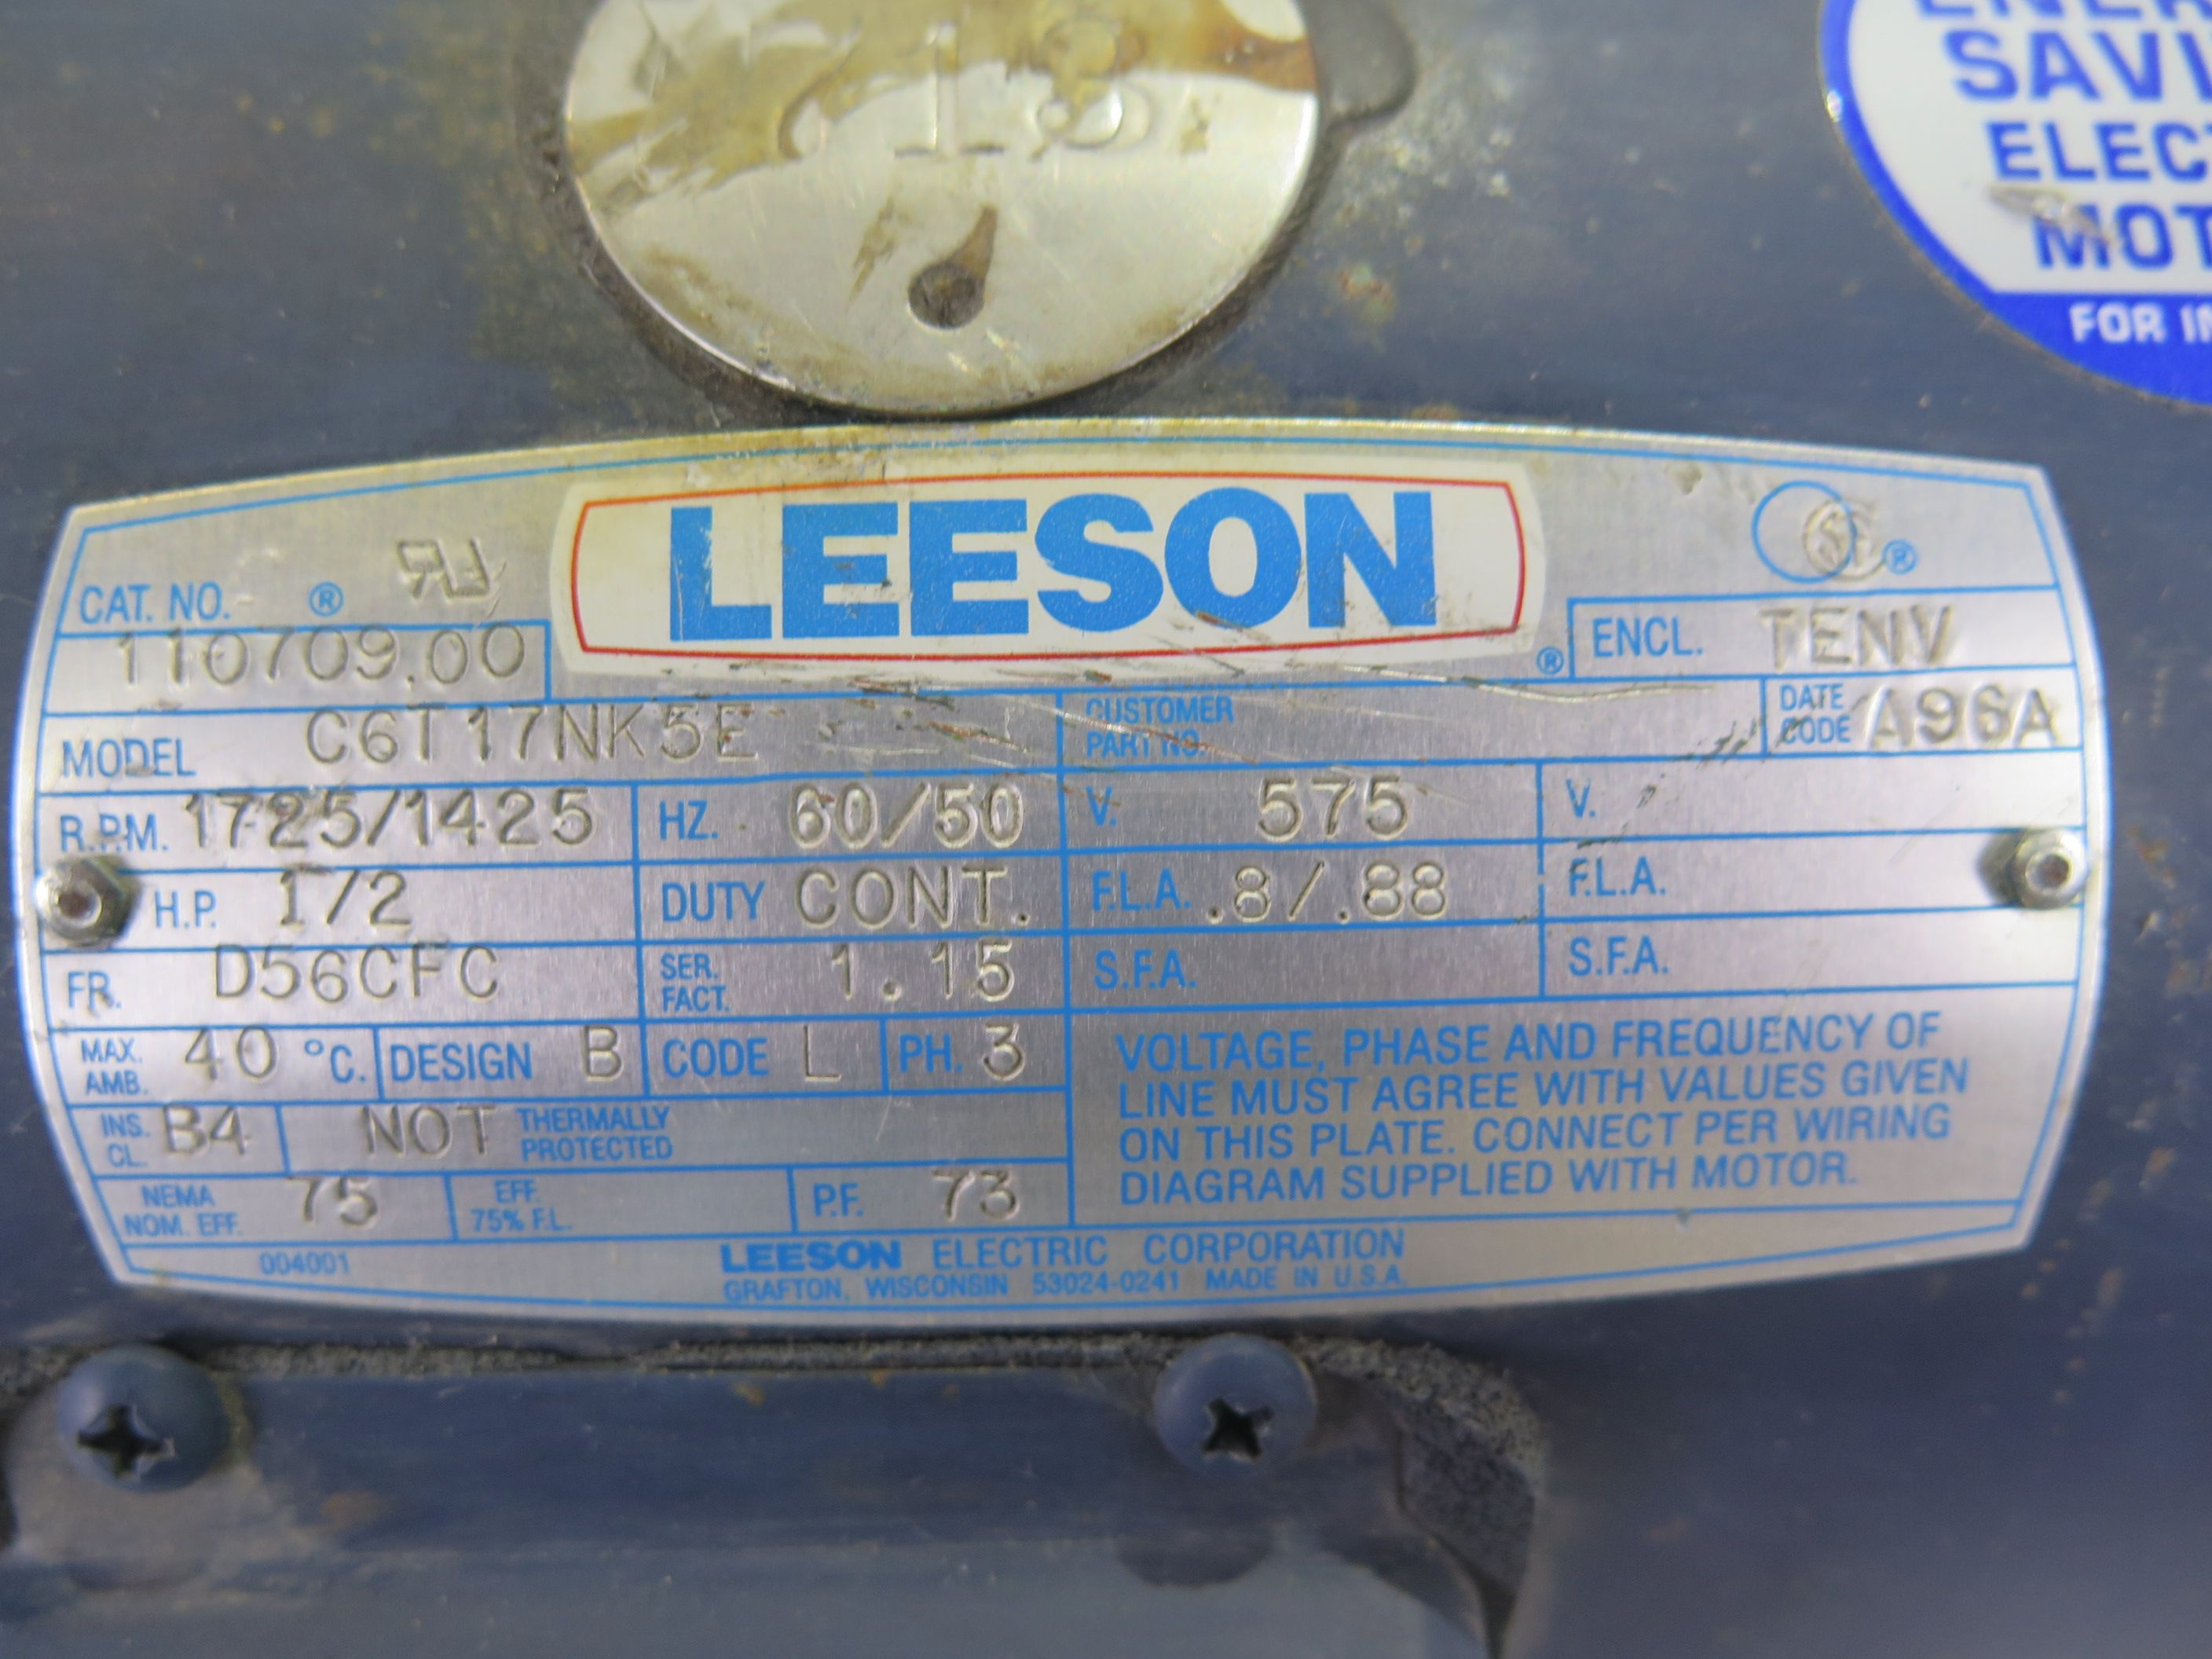 MOTOR AC - LEESON - 0.5 HP - 1800 RPM - 575 VOLTS on